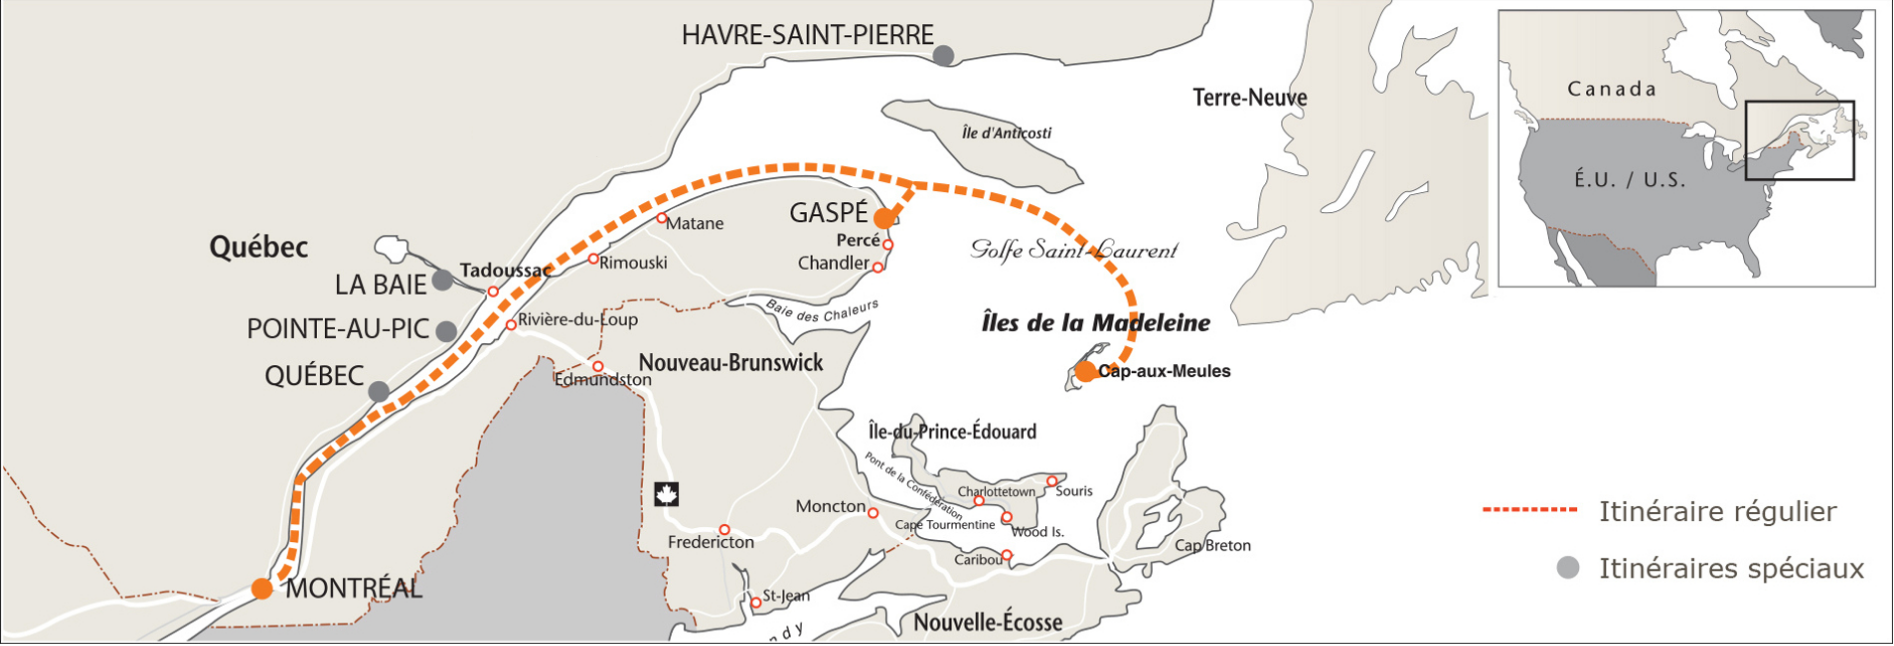 map itineraire regulier 2020